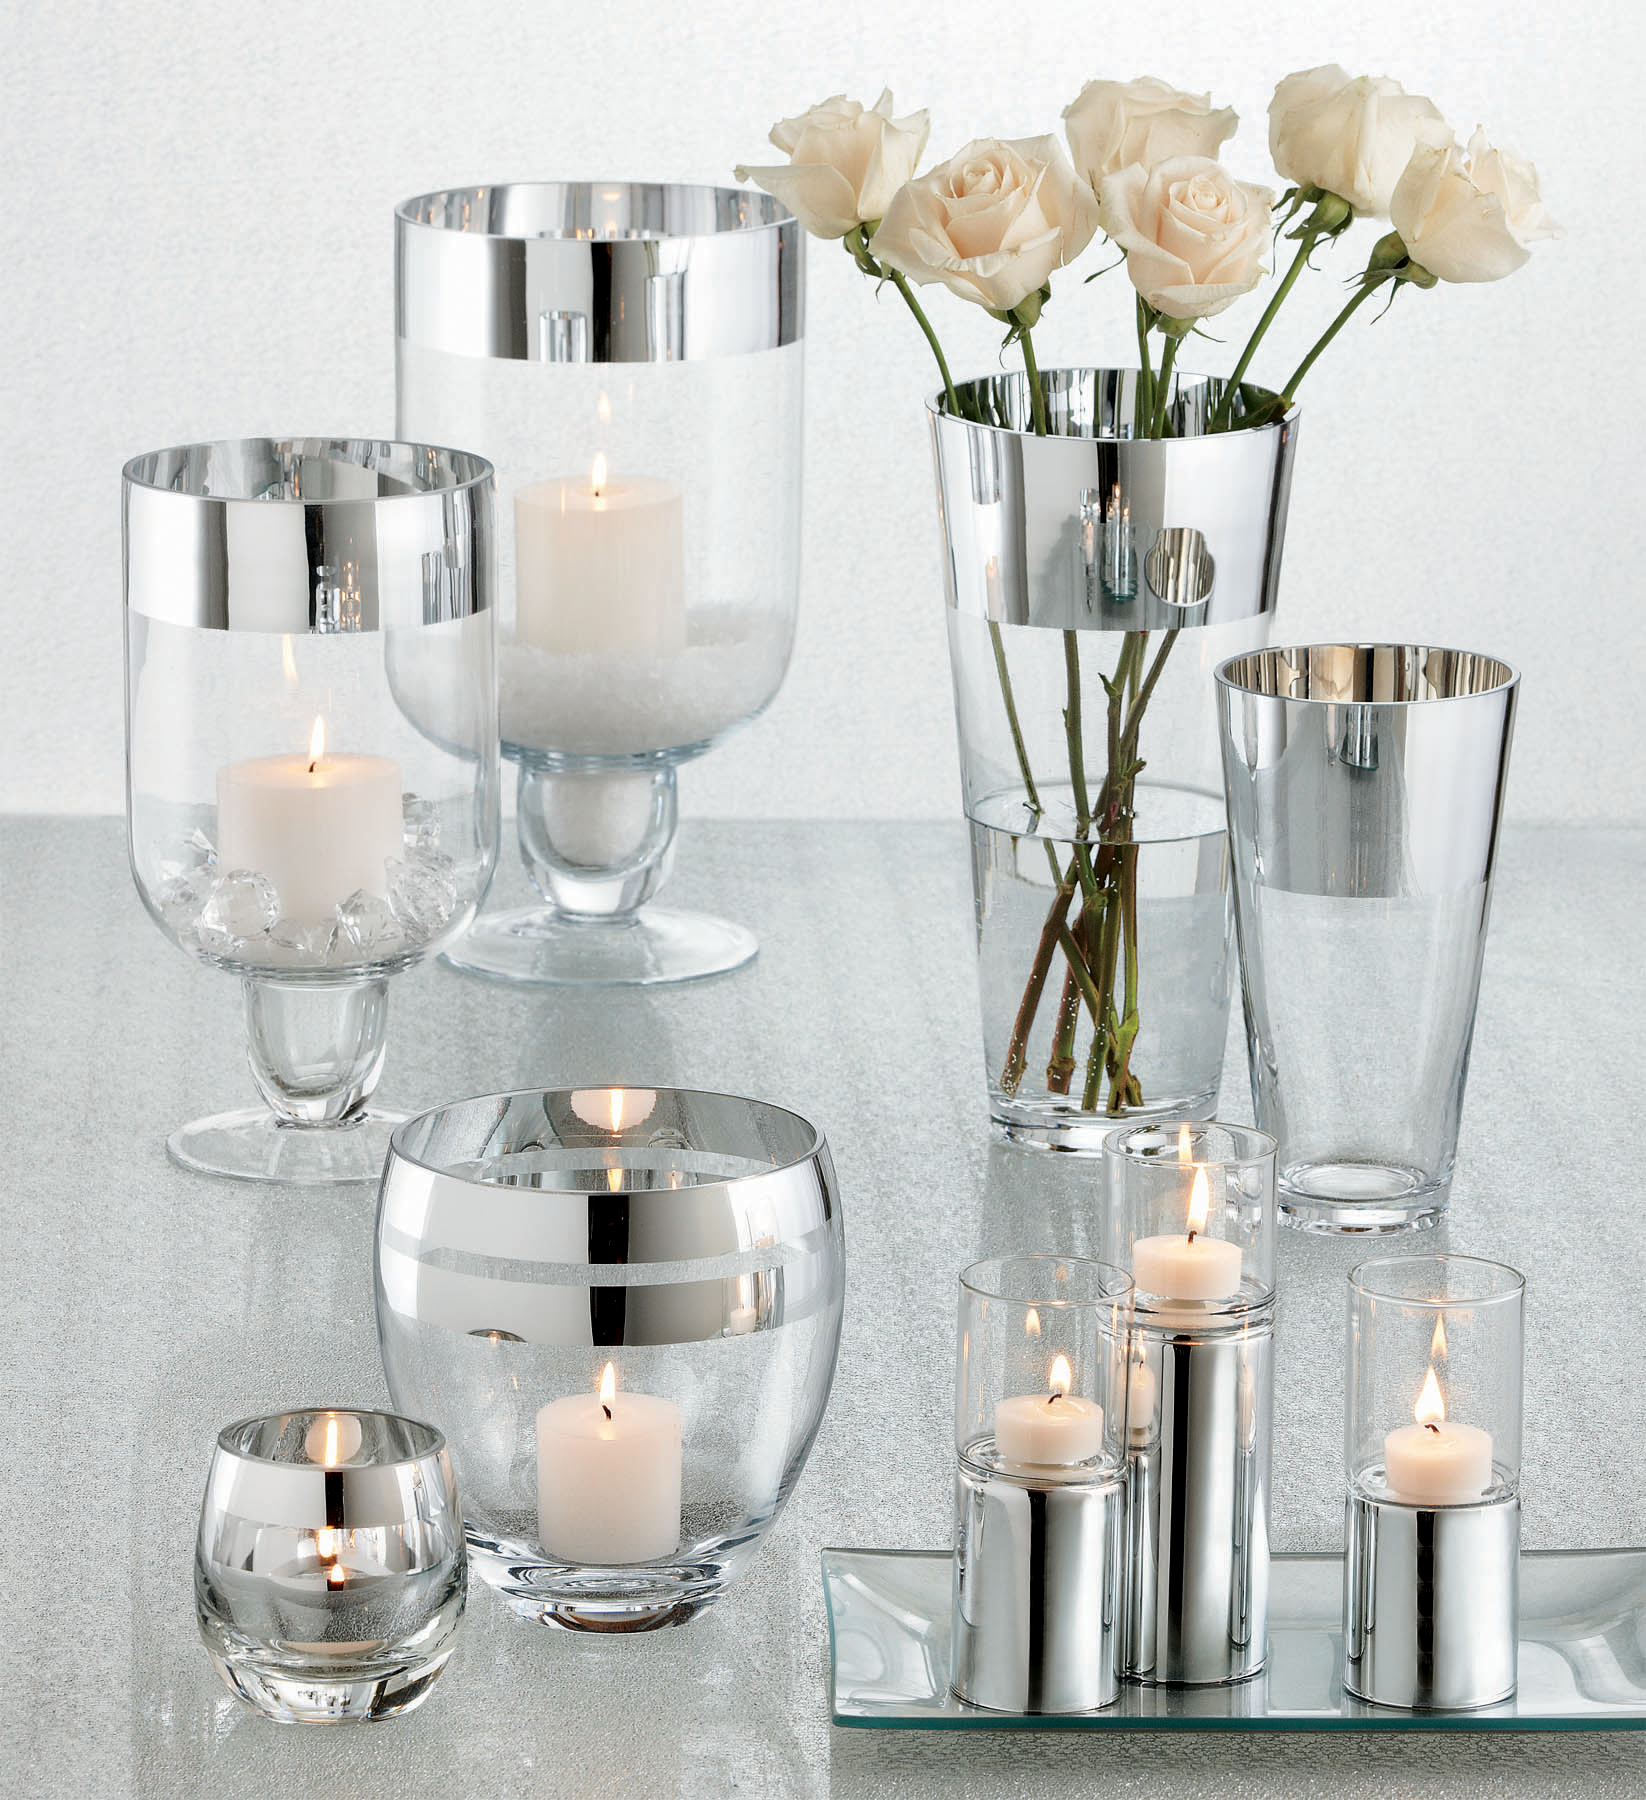 Shimmering Tabletop Centerpieces And Home Decor Silver Trimmed Glass Candles And Vases Perfect For A Little Added Wedding Bling Candles Dream Wedding